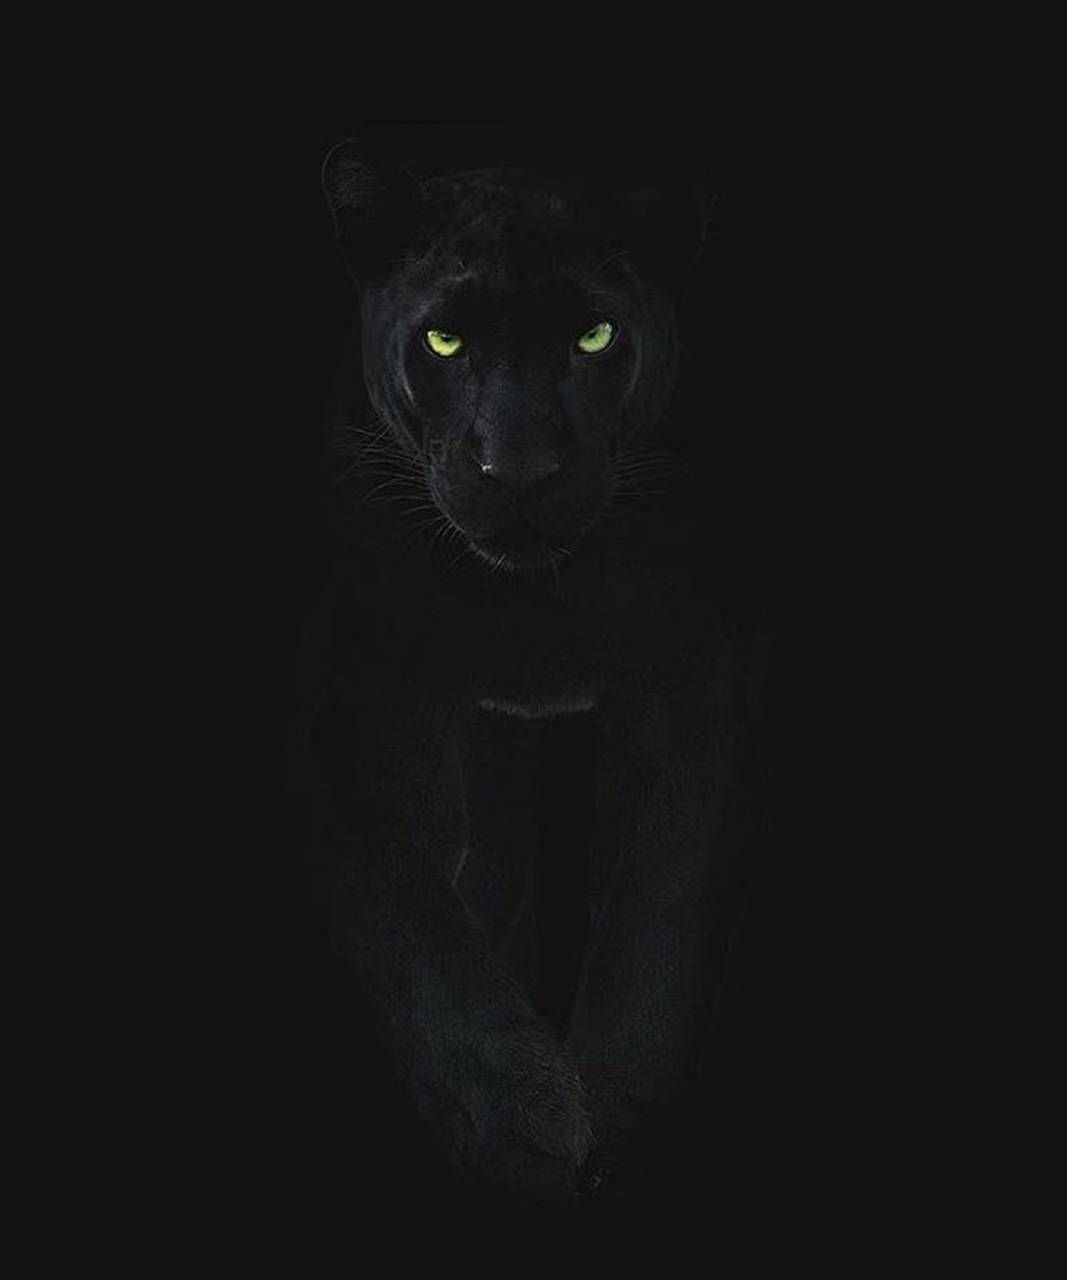 Black puma wallpaper by PjB2708 - dc - Free on ZEDGE™